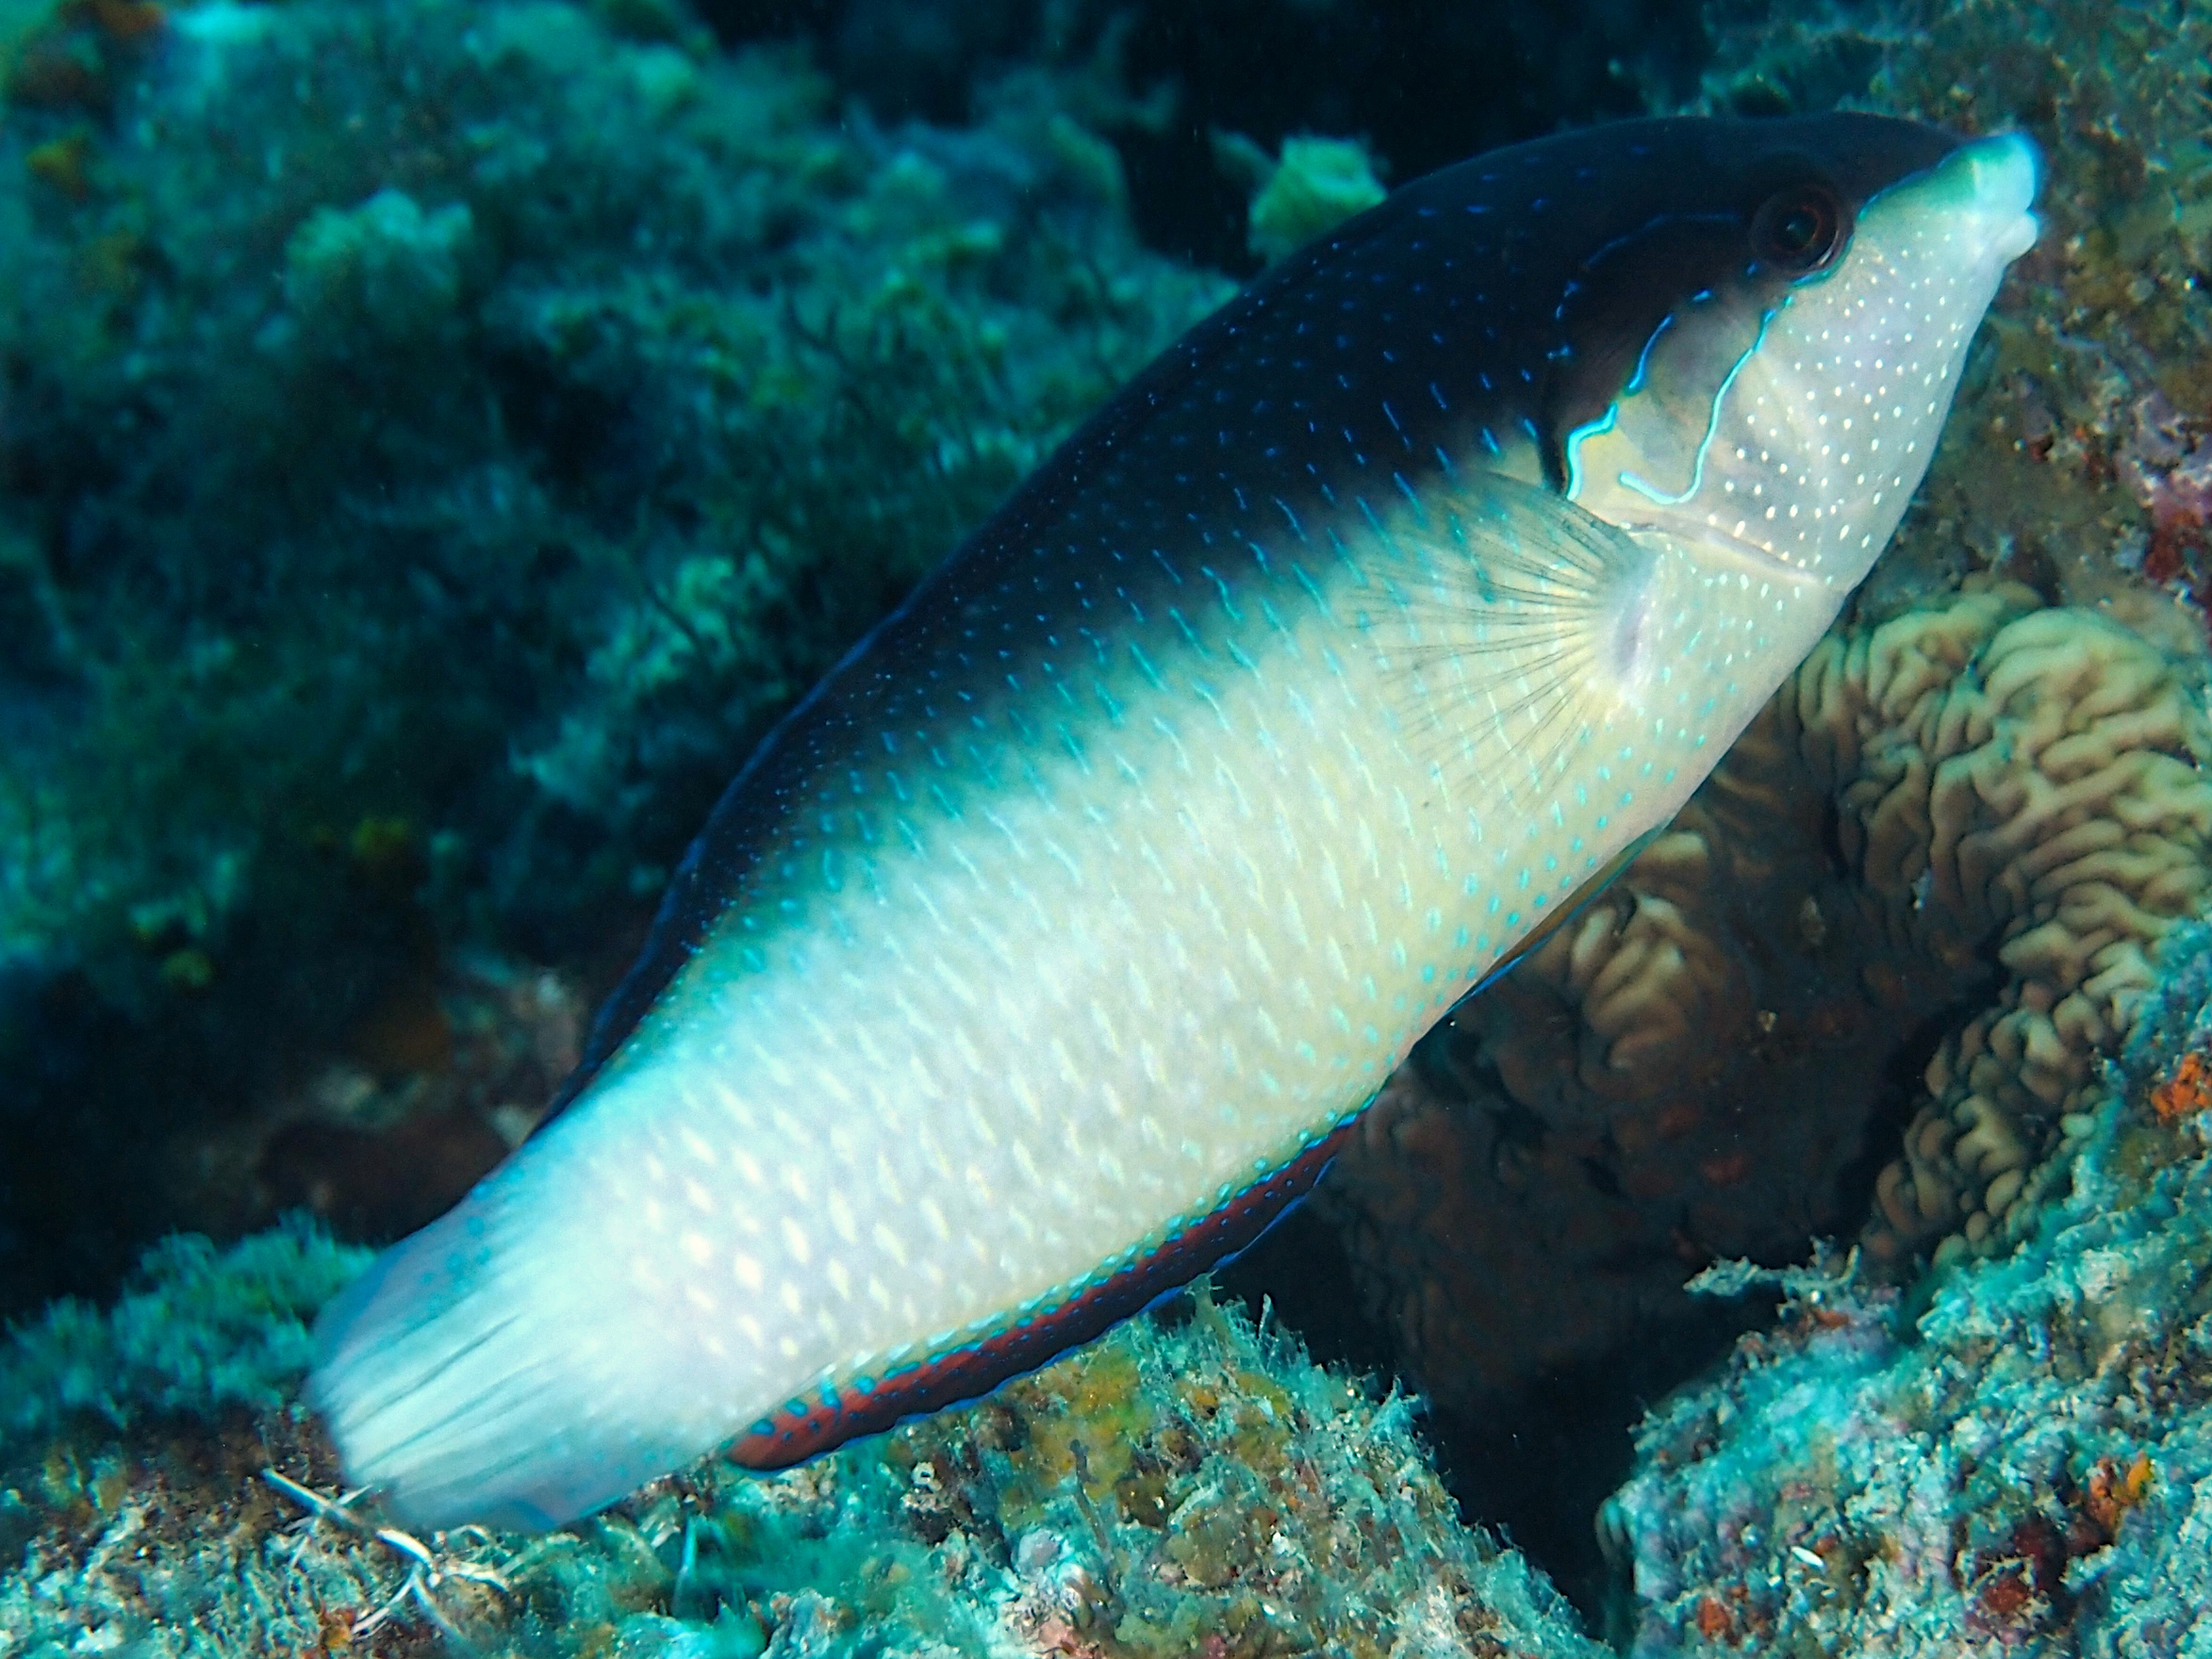 New Guinea Wrasse - Anampses neoguinaicus